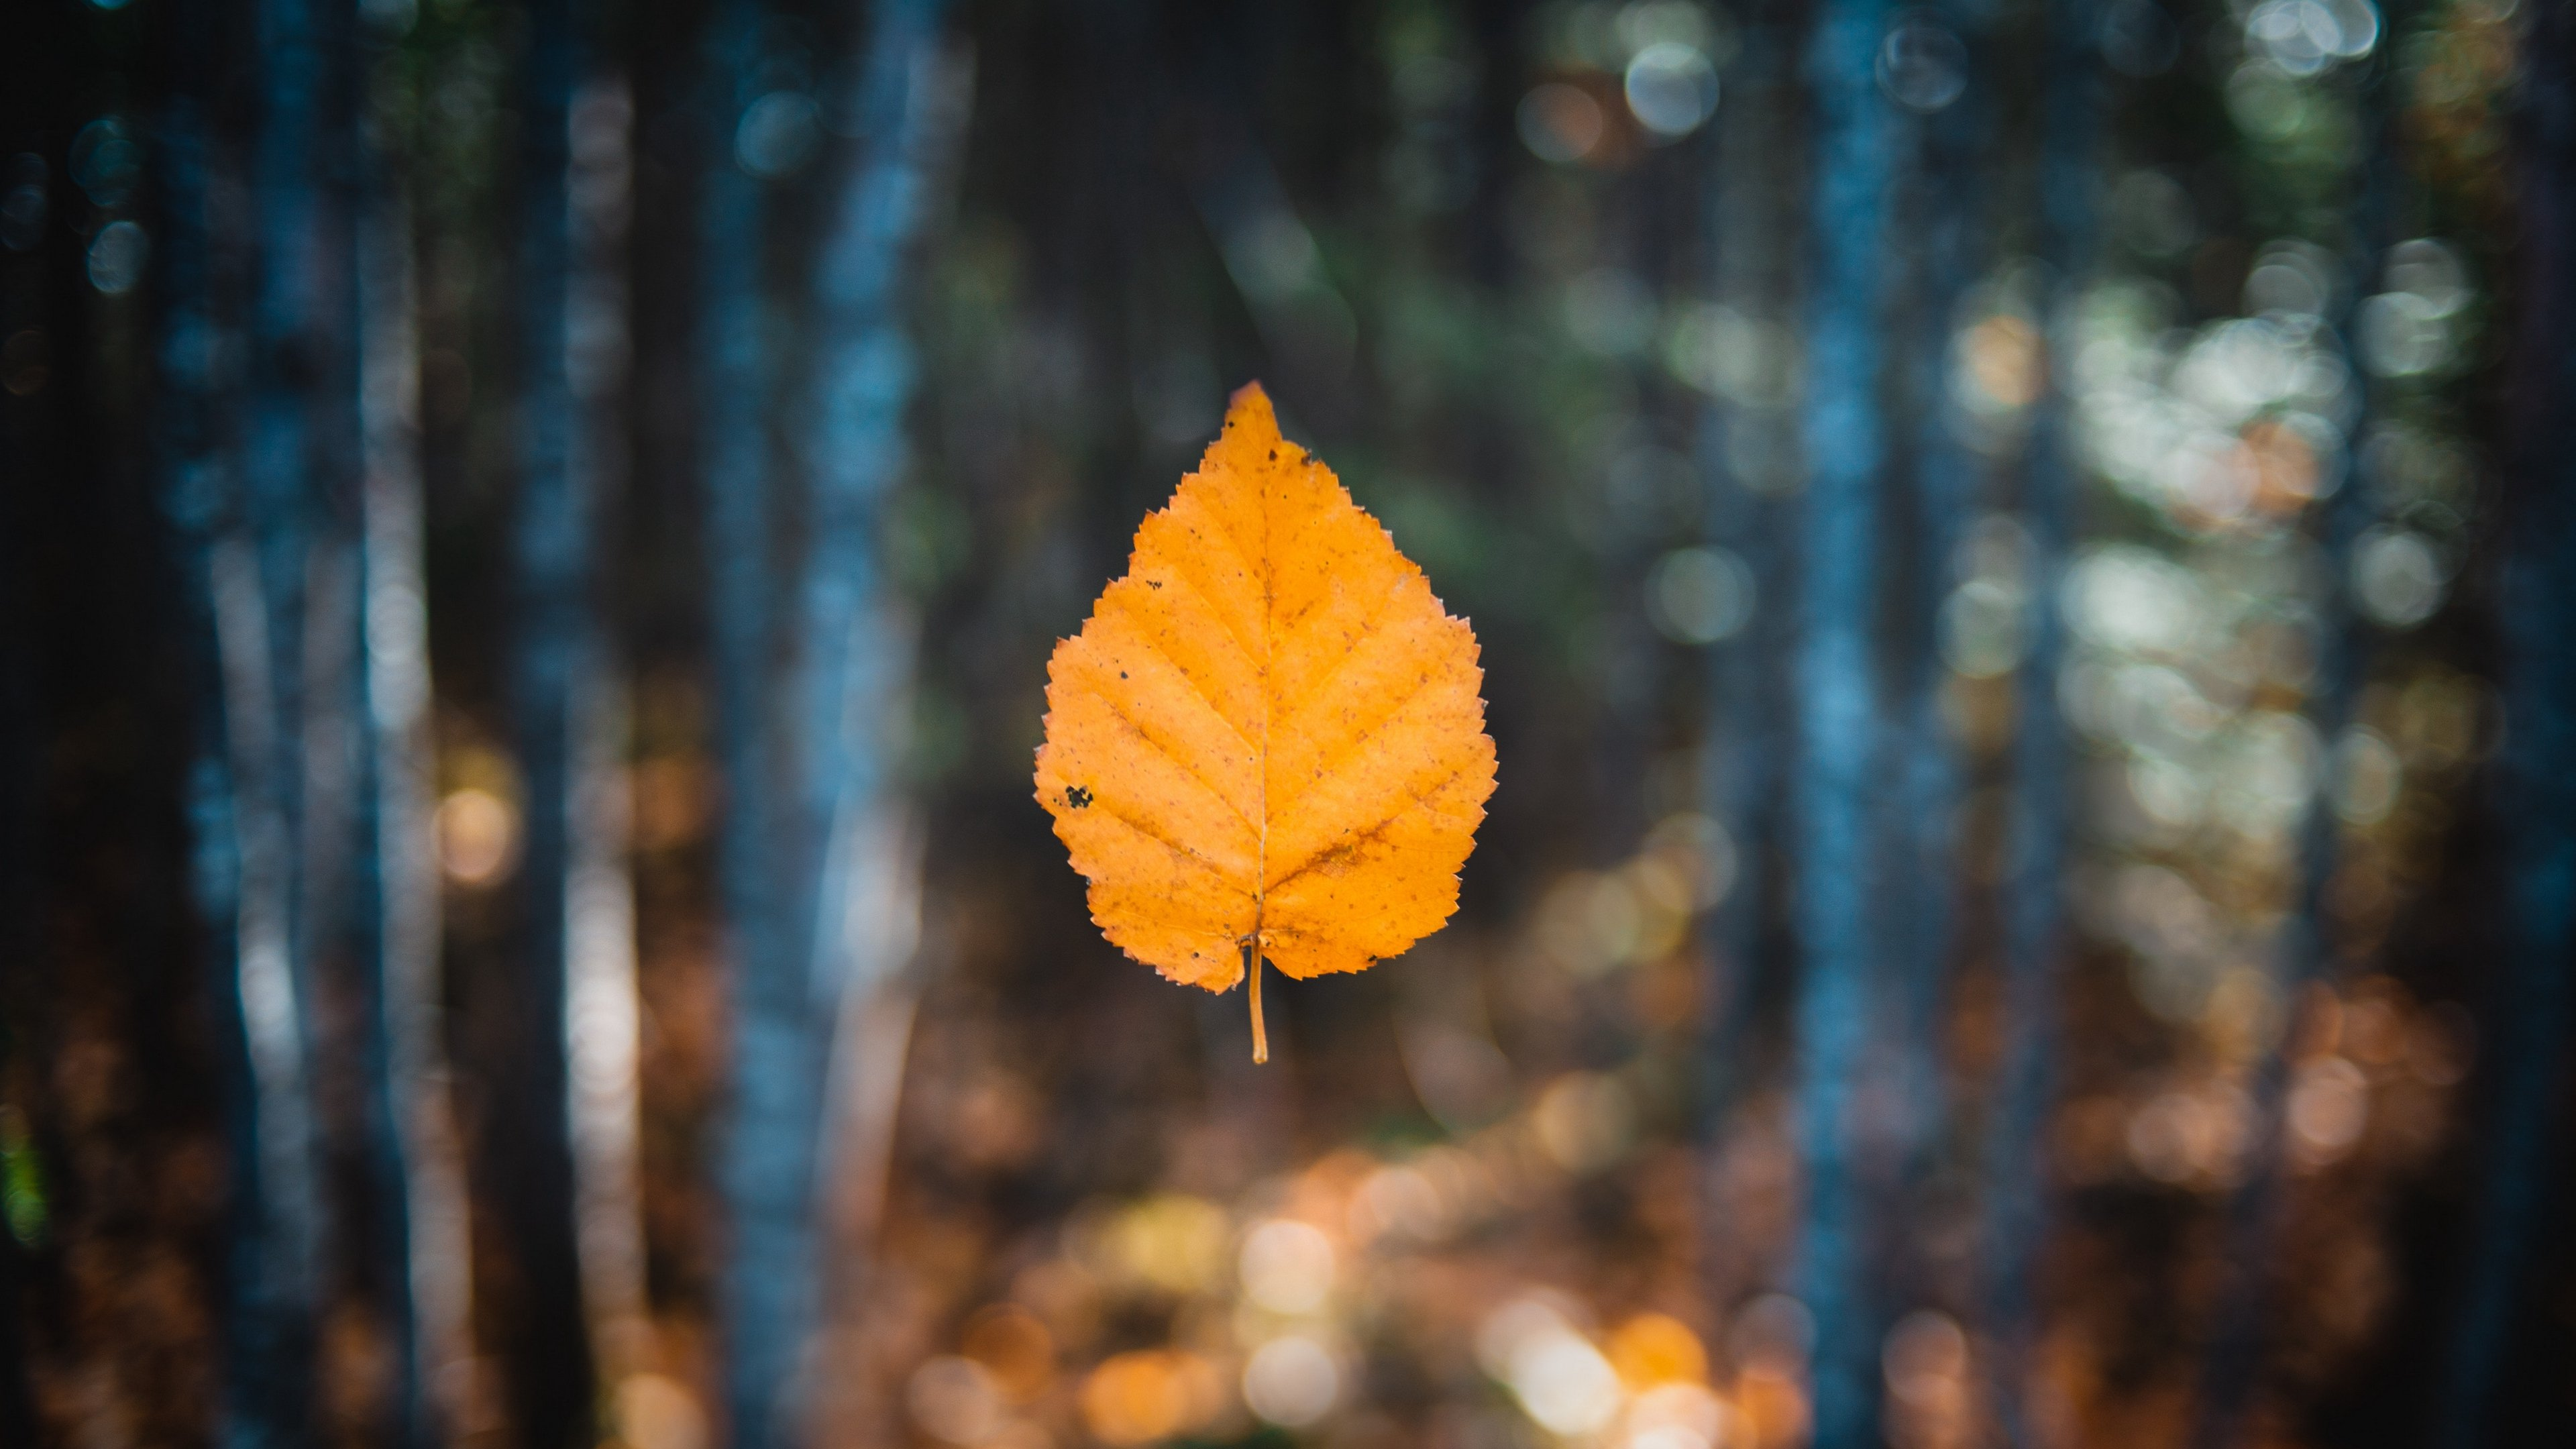 Leaf 4k Wallpapers For Your Desktop Or Mobile Screen Free